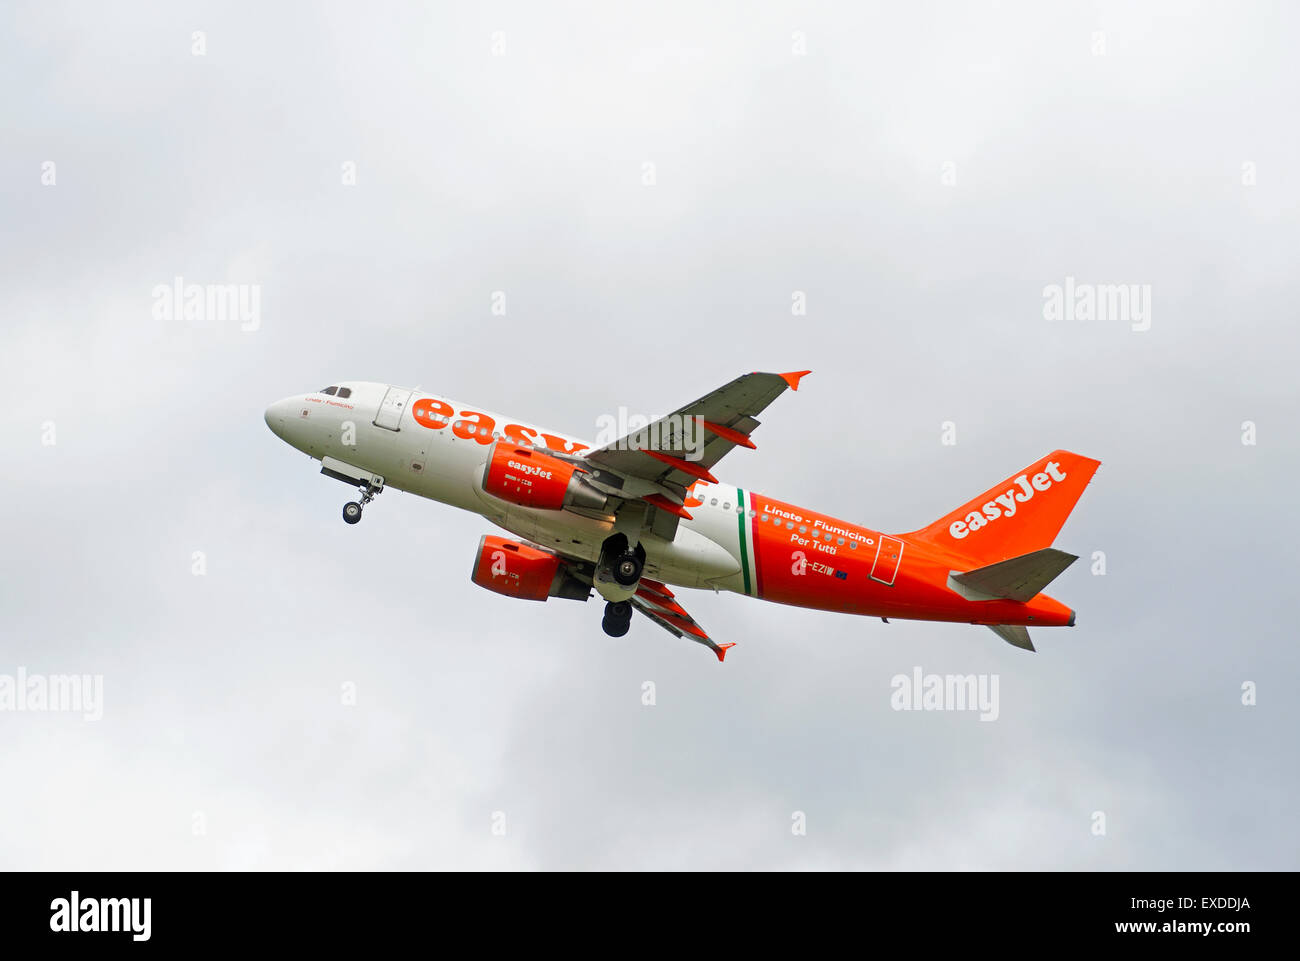 EasyJet Airbus 319-111 leaving Inverness Dalcross airfield Scotland.  SCO 9935. - Stock Image